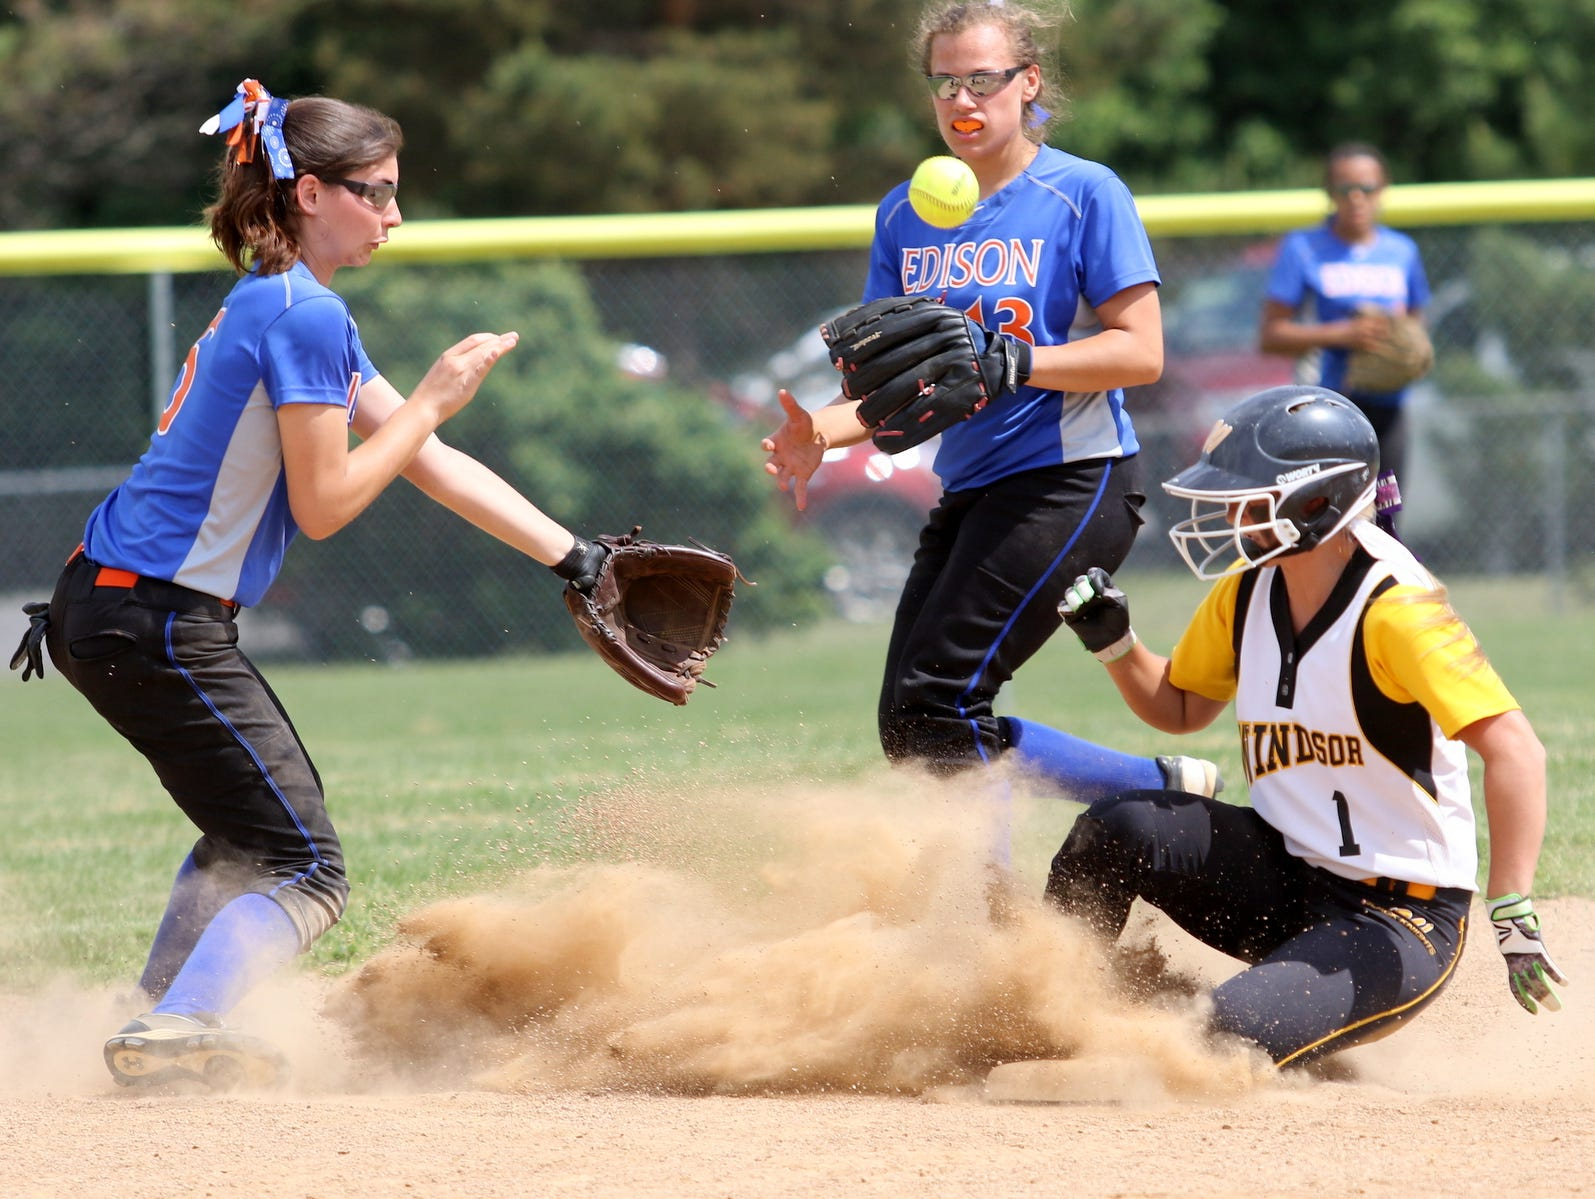 Windsor's Allison Lockwood slides safely into second as Edison's Haley Maggs awaits the ball during Saturday's Section 4 Class B softball final at BAGSAI Complex.